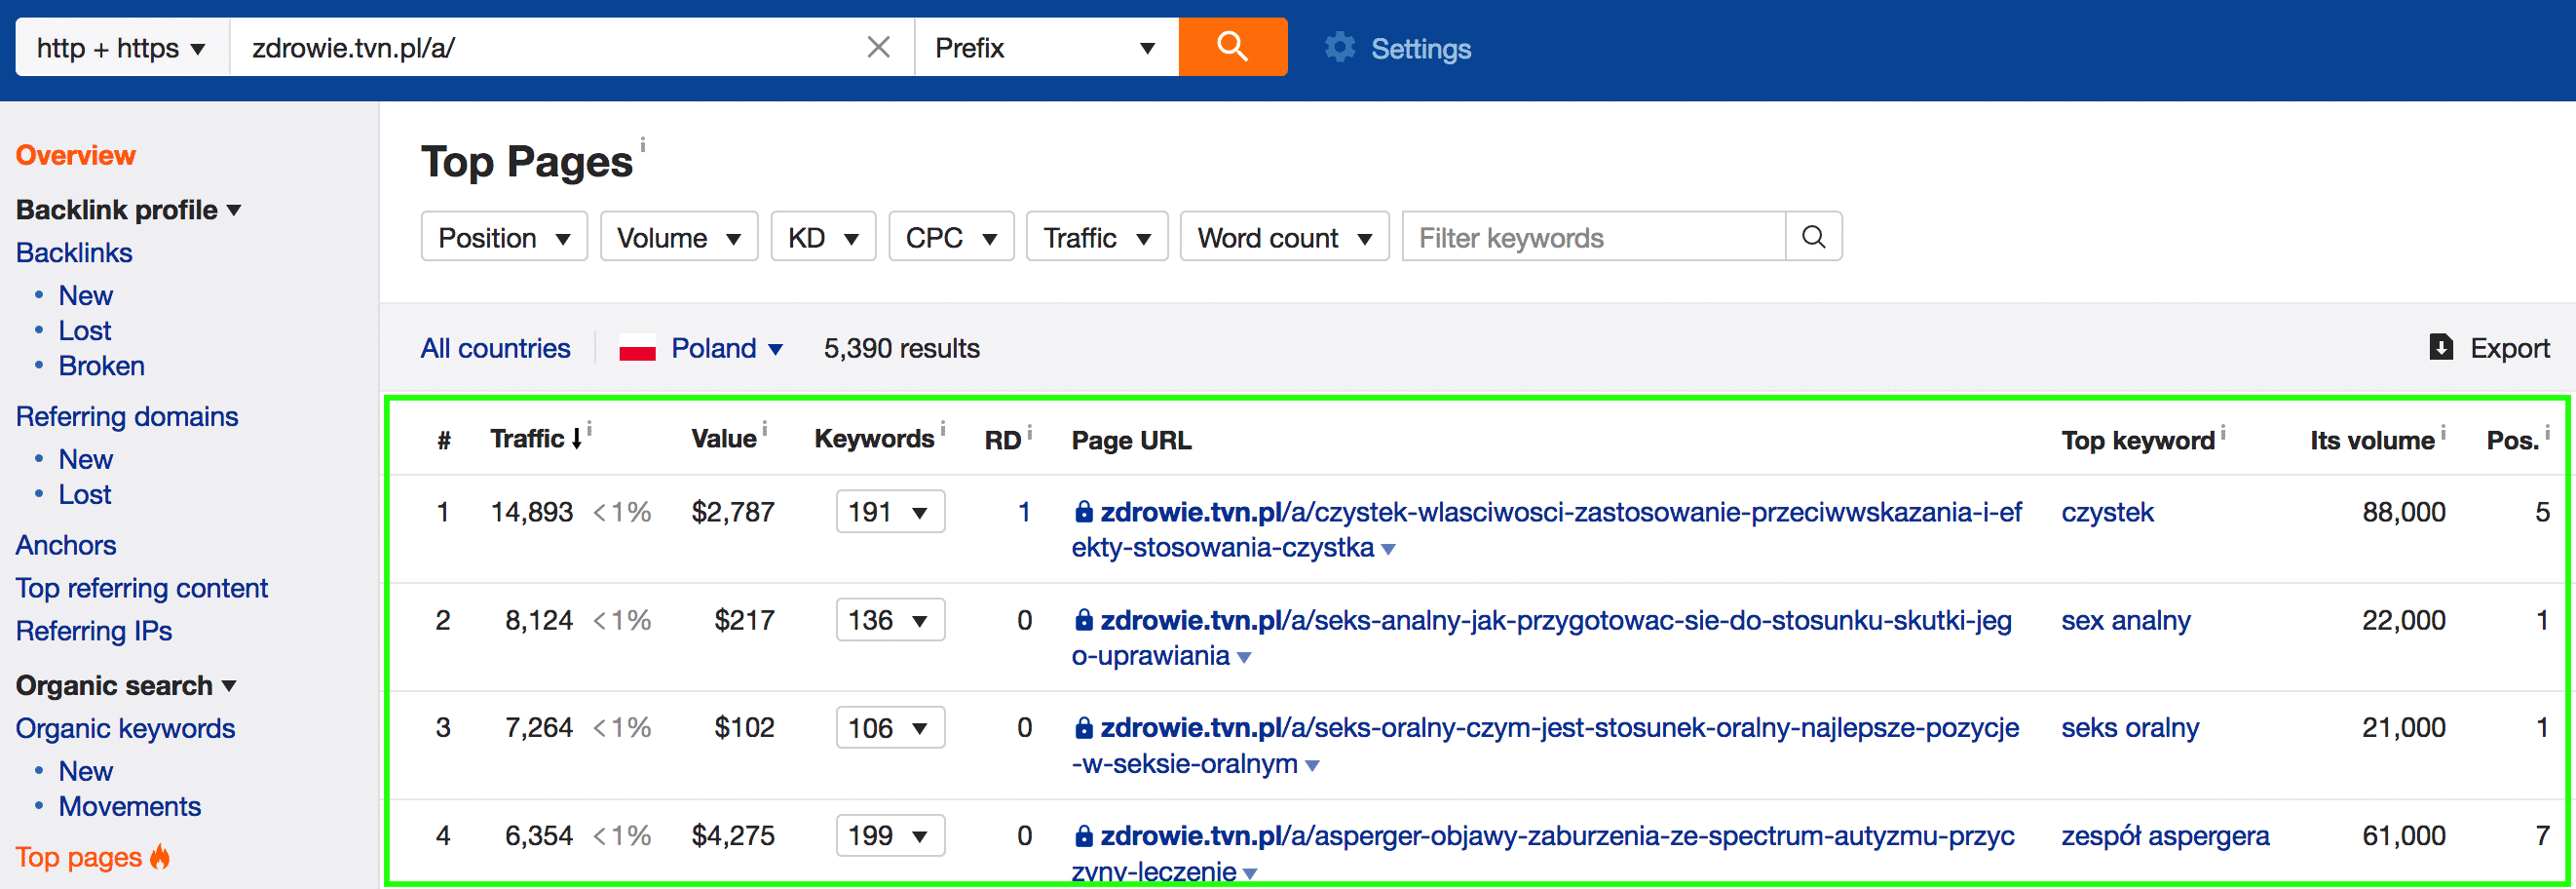 zdrowie tvn pl ahrefs top pages